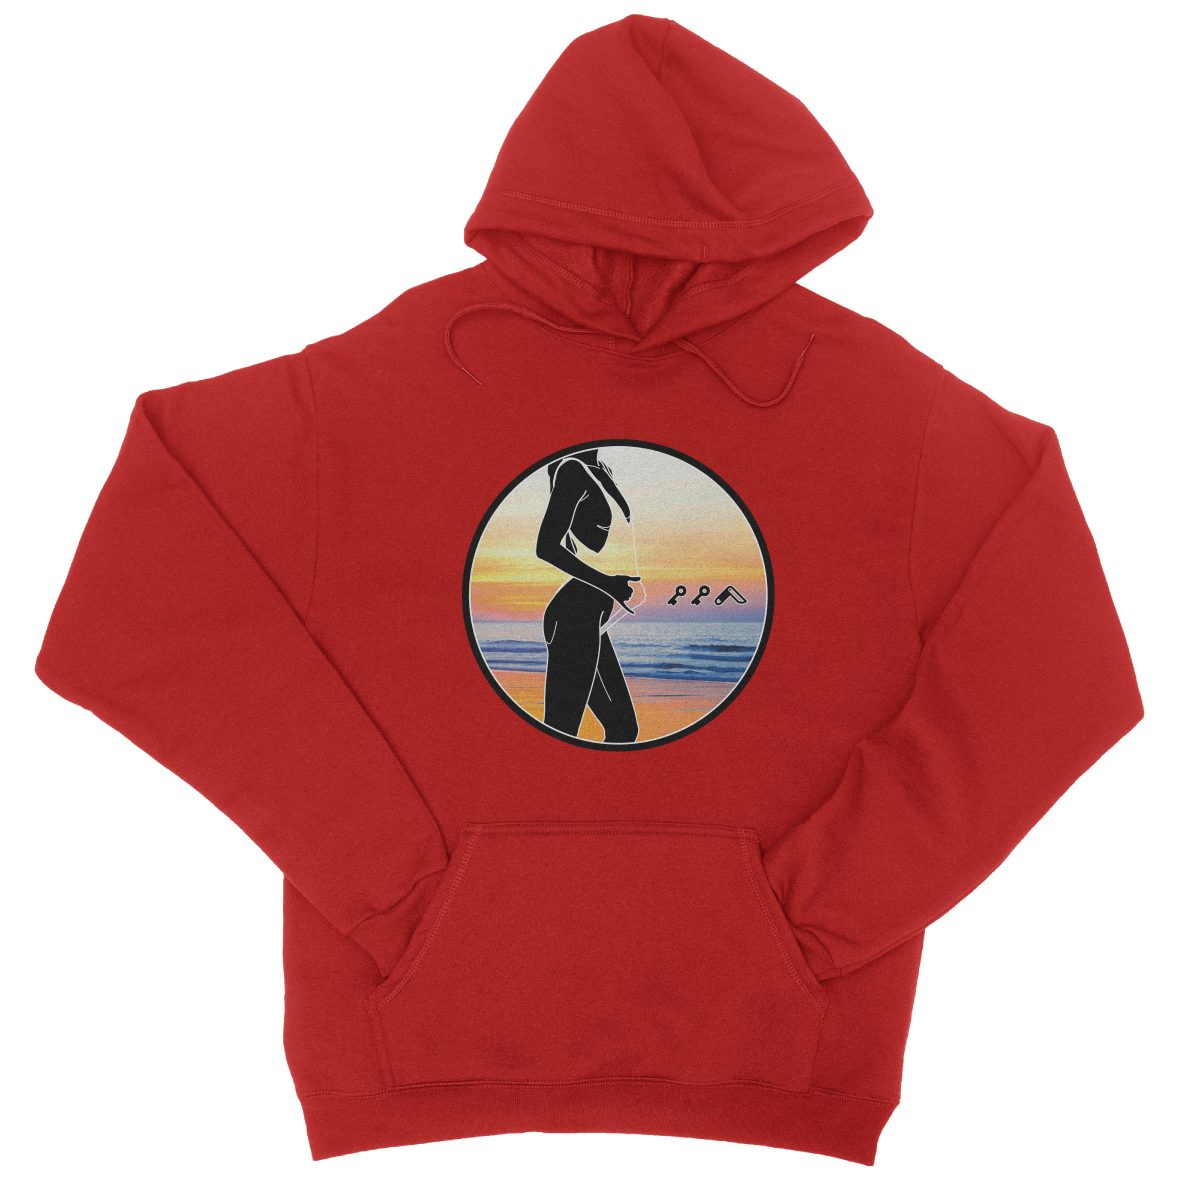 """BAE WATCH"" music festival soft beach hoodie in red"